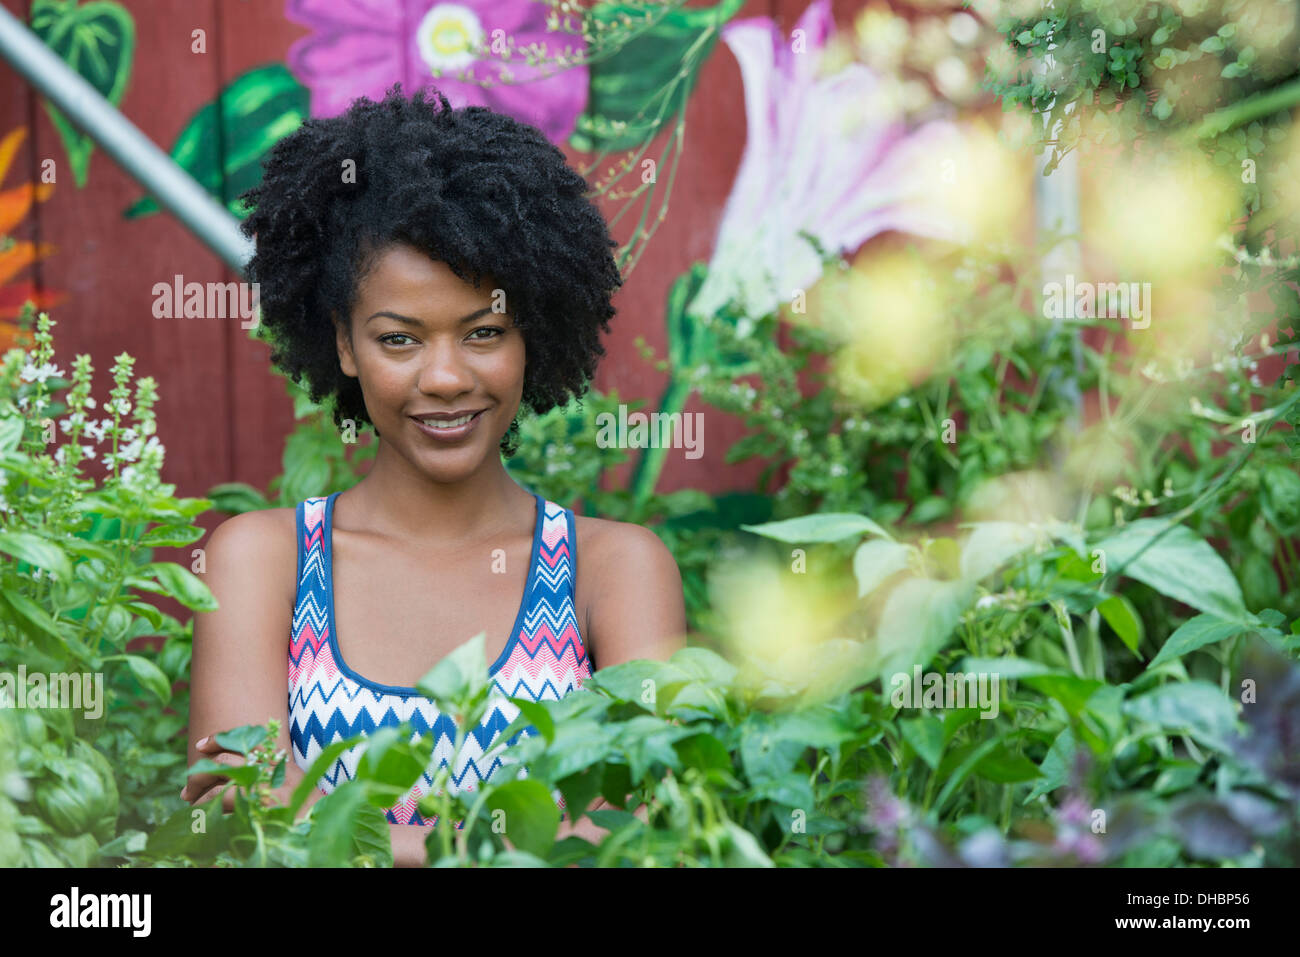 A woman standing in a plant nursery, surrounded by plants, flowers and foliage. - Stock Image